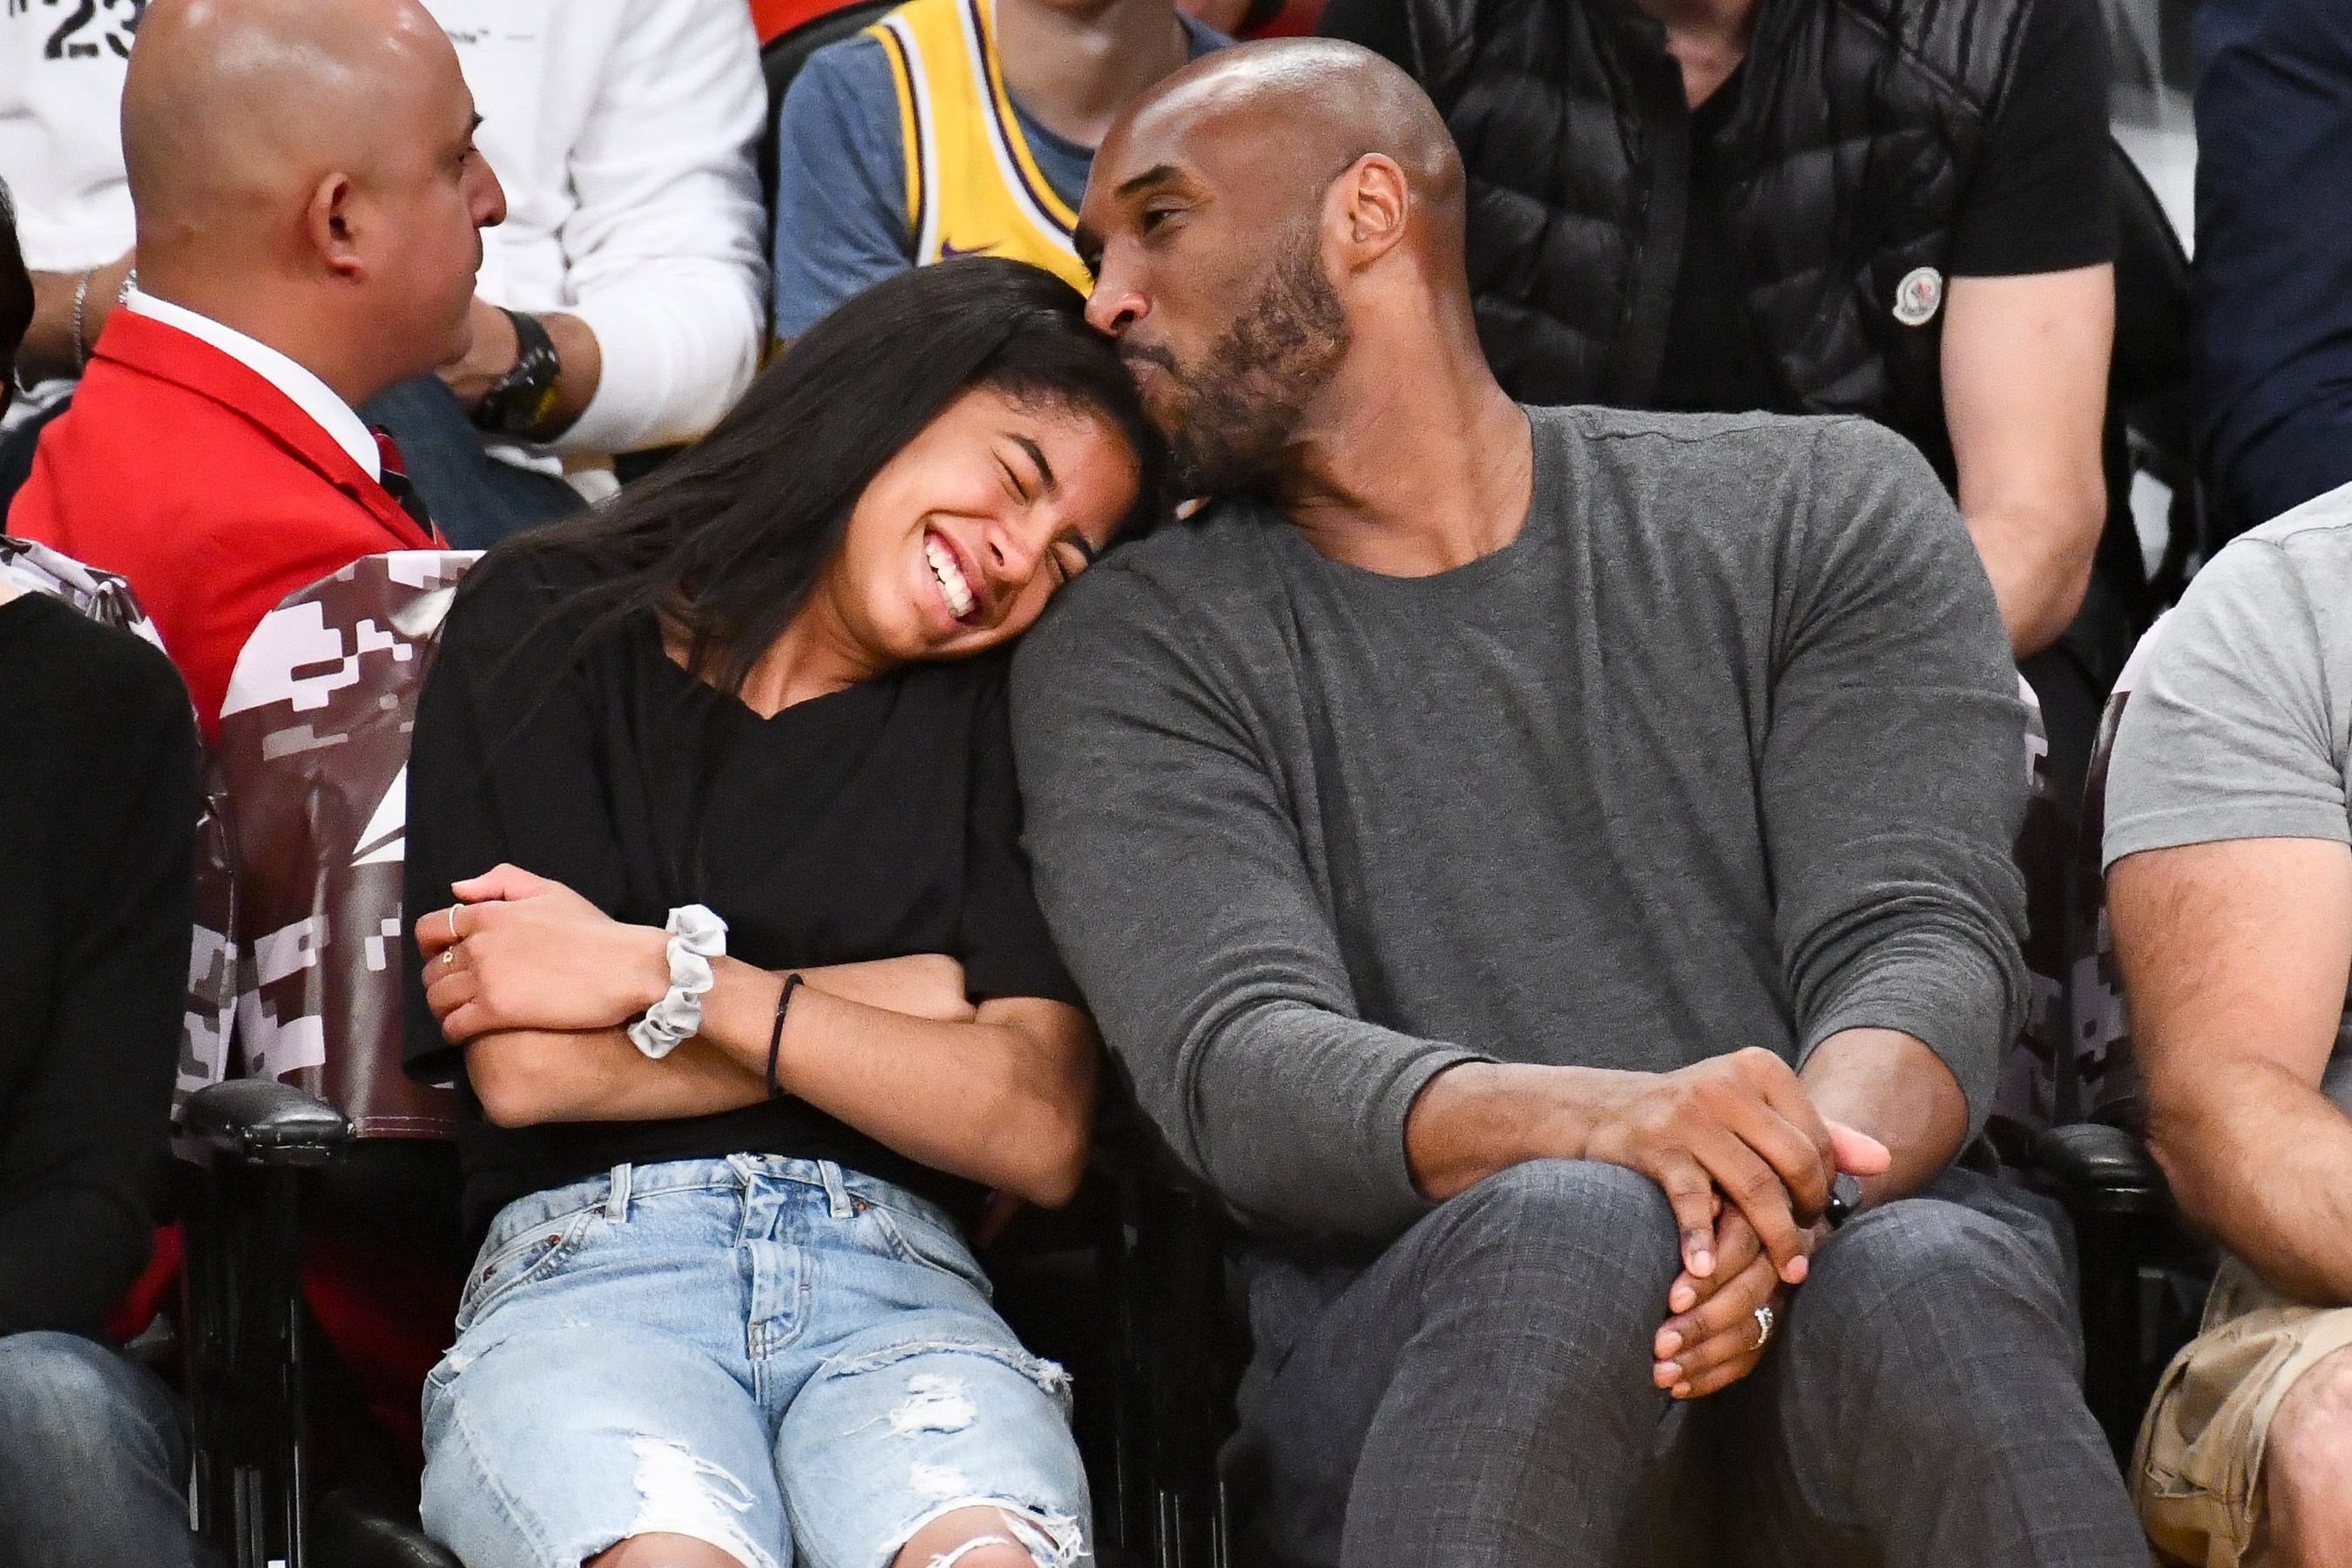 Opinion: Kobe will never cease to inspire us all